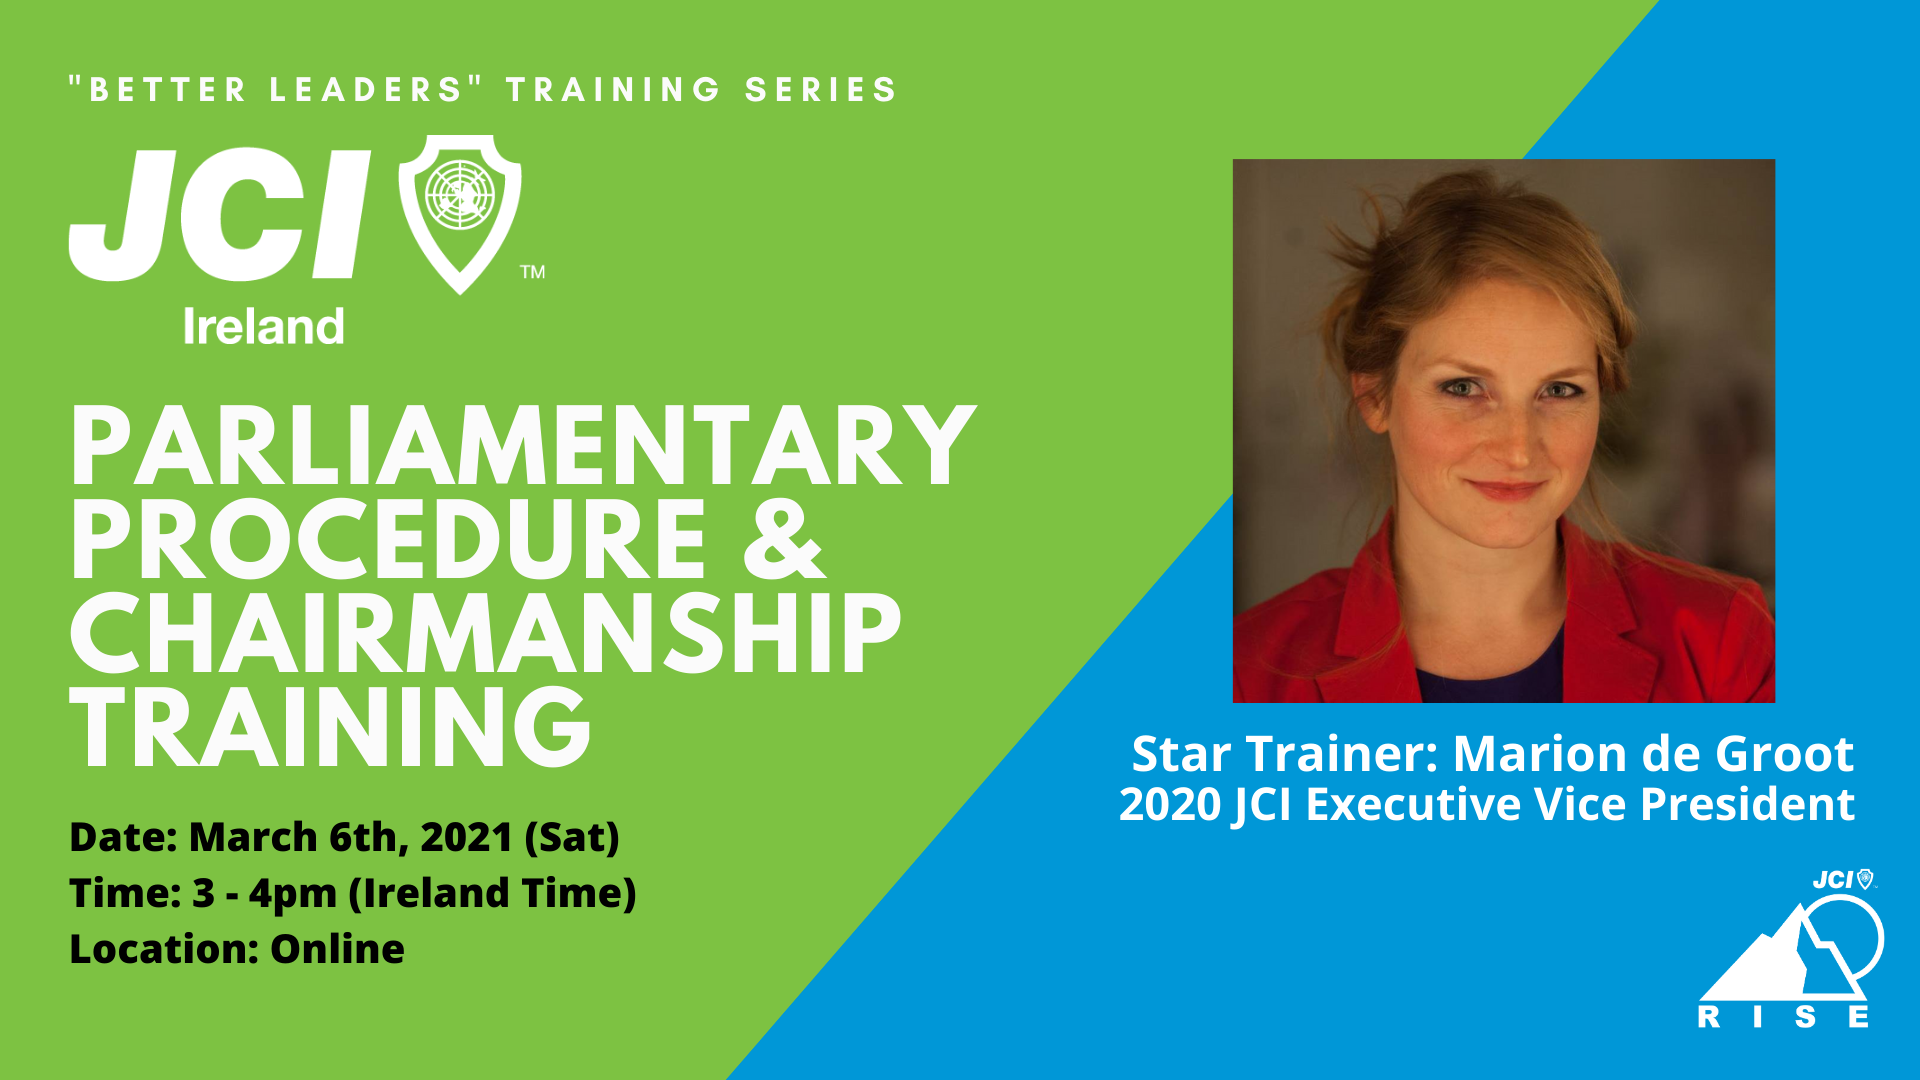 JCI Ireland Parliamentary Procedure & Chairmanship Training